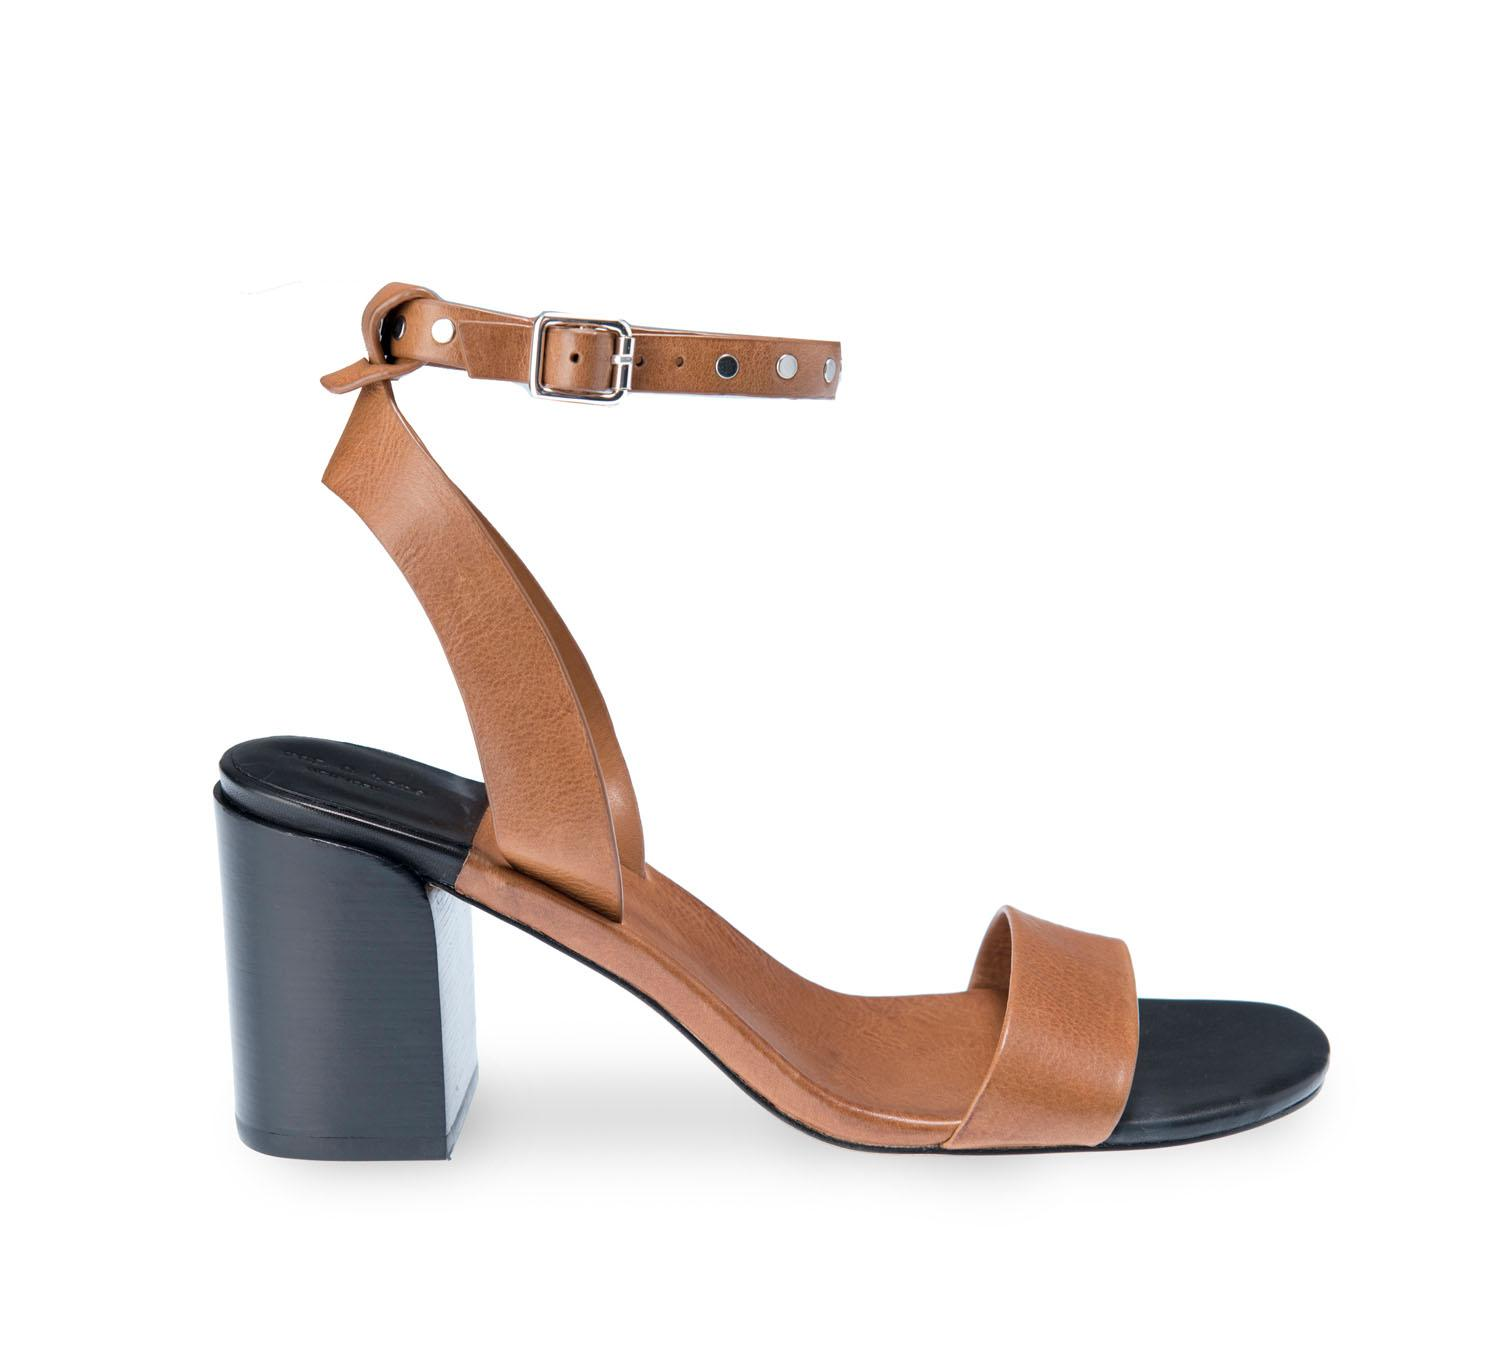 recommend for sale Rag & Bone Leather Gia Sandals w/ Tags cheap purchase shopping online how much cheap price R0StqDViLn